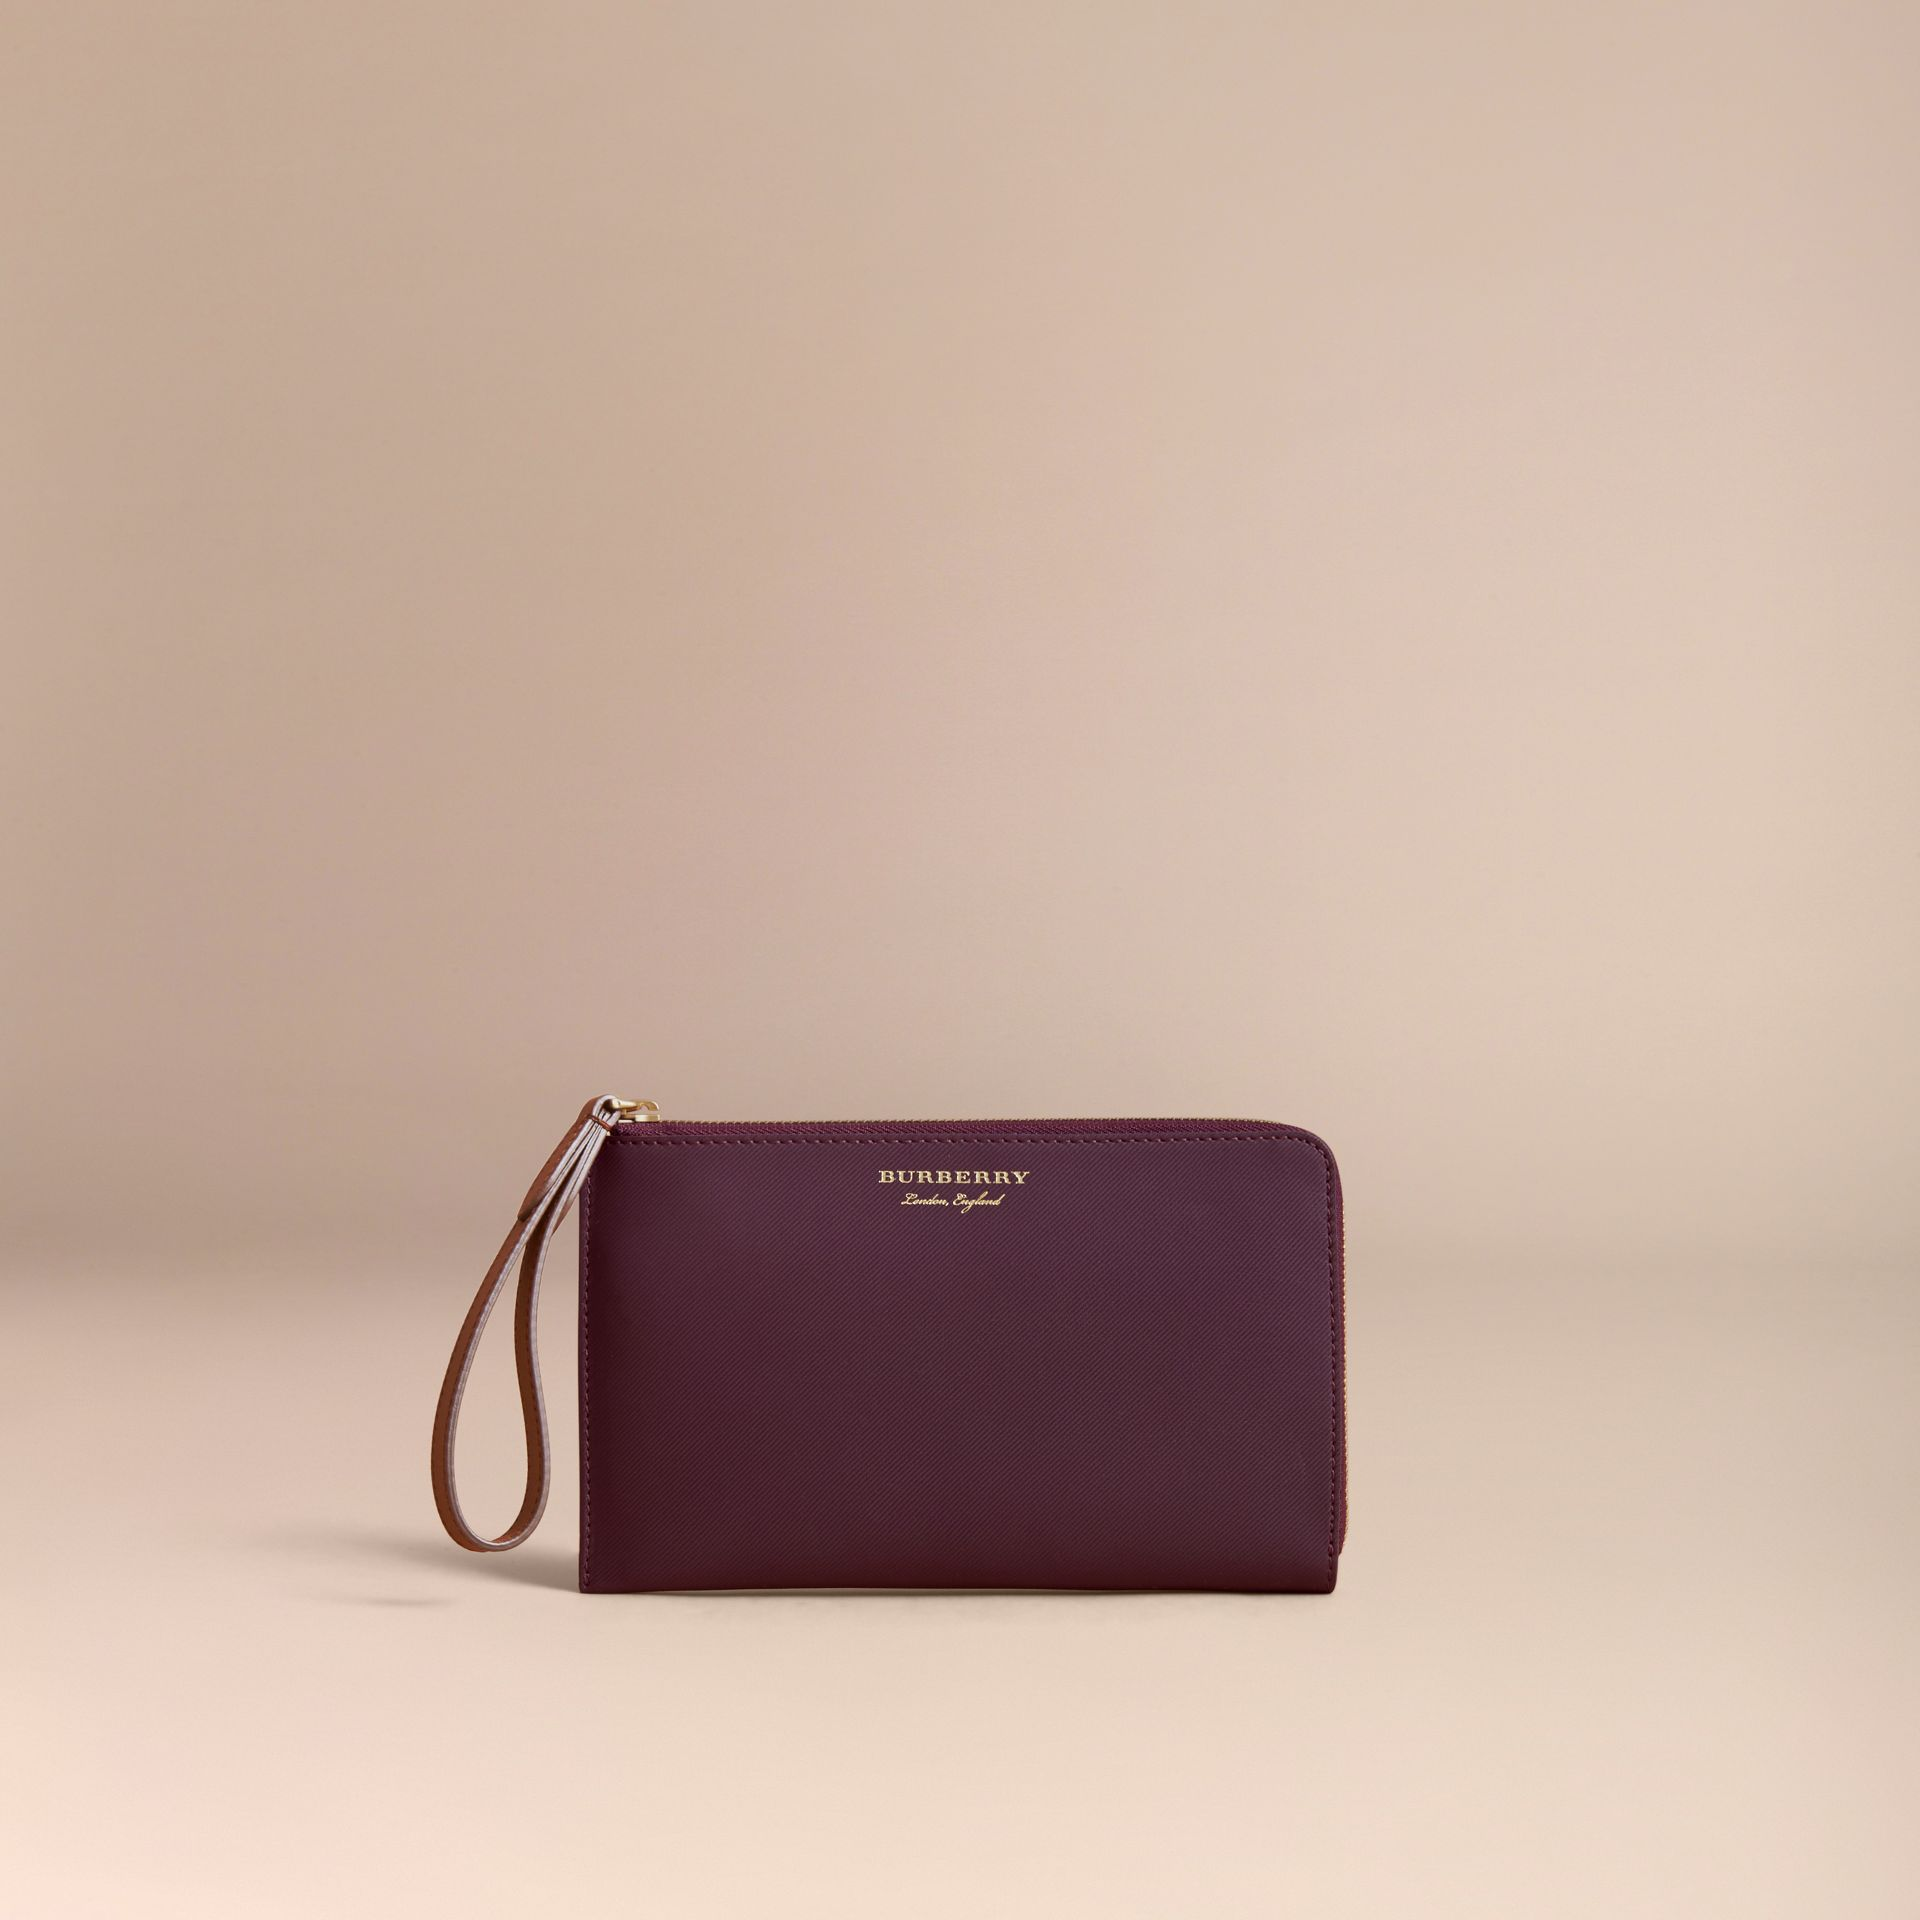 Two-tone Trench Leather Travel Wallet in Wine - Men | Burberry Hong Kong - gallery image 5